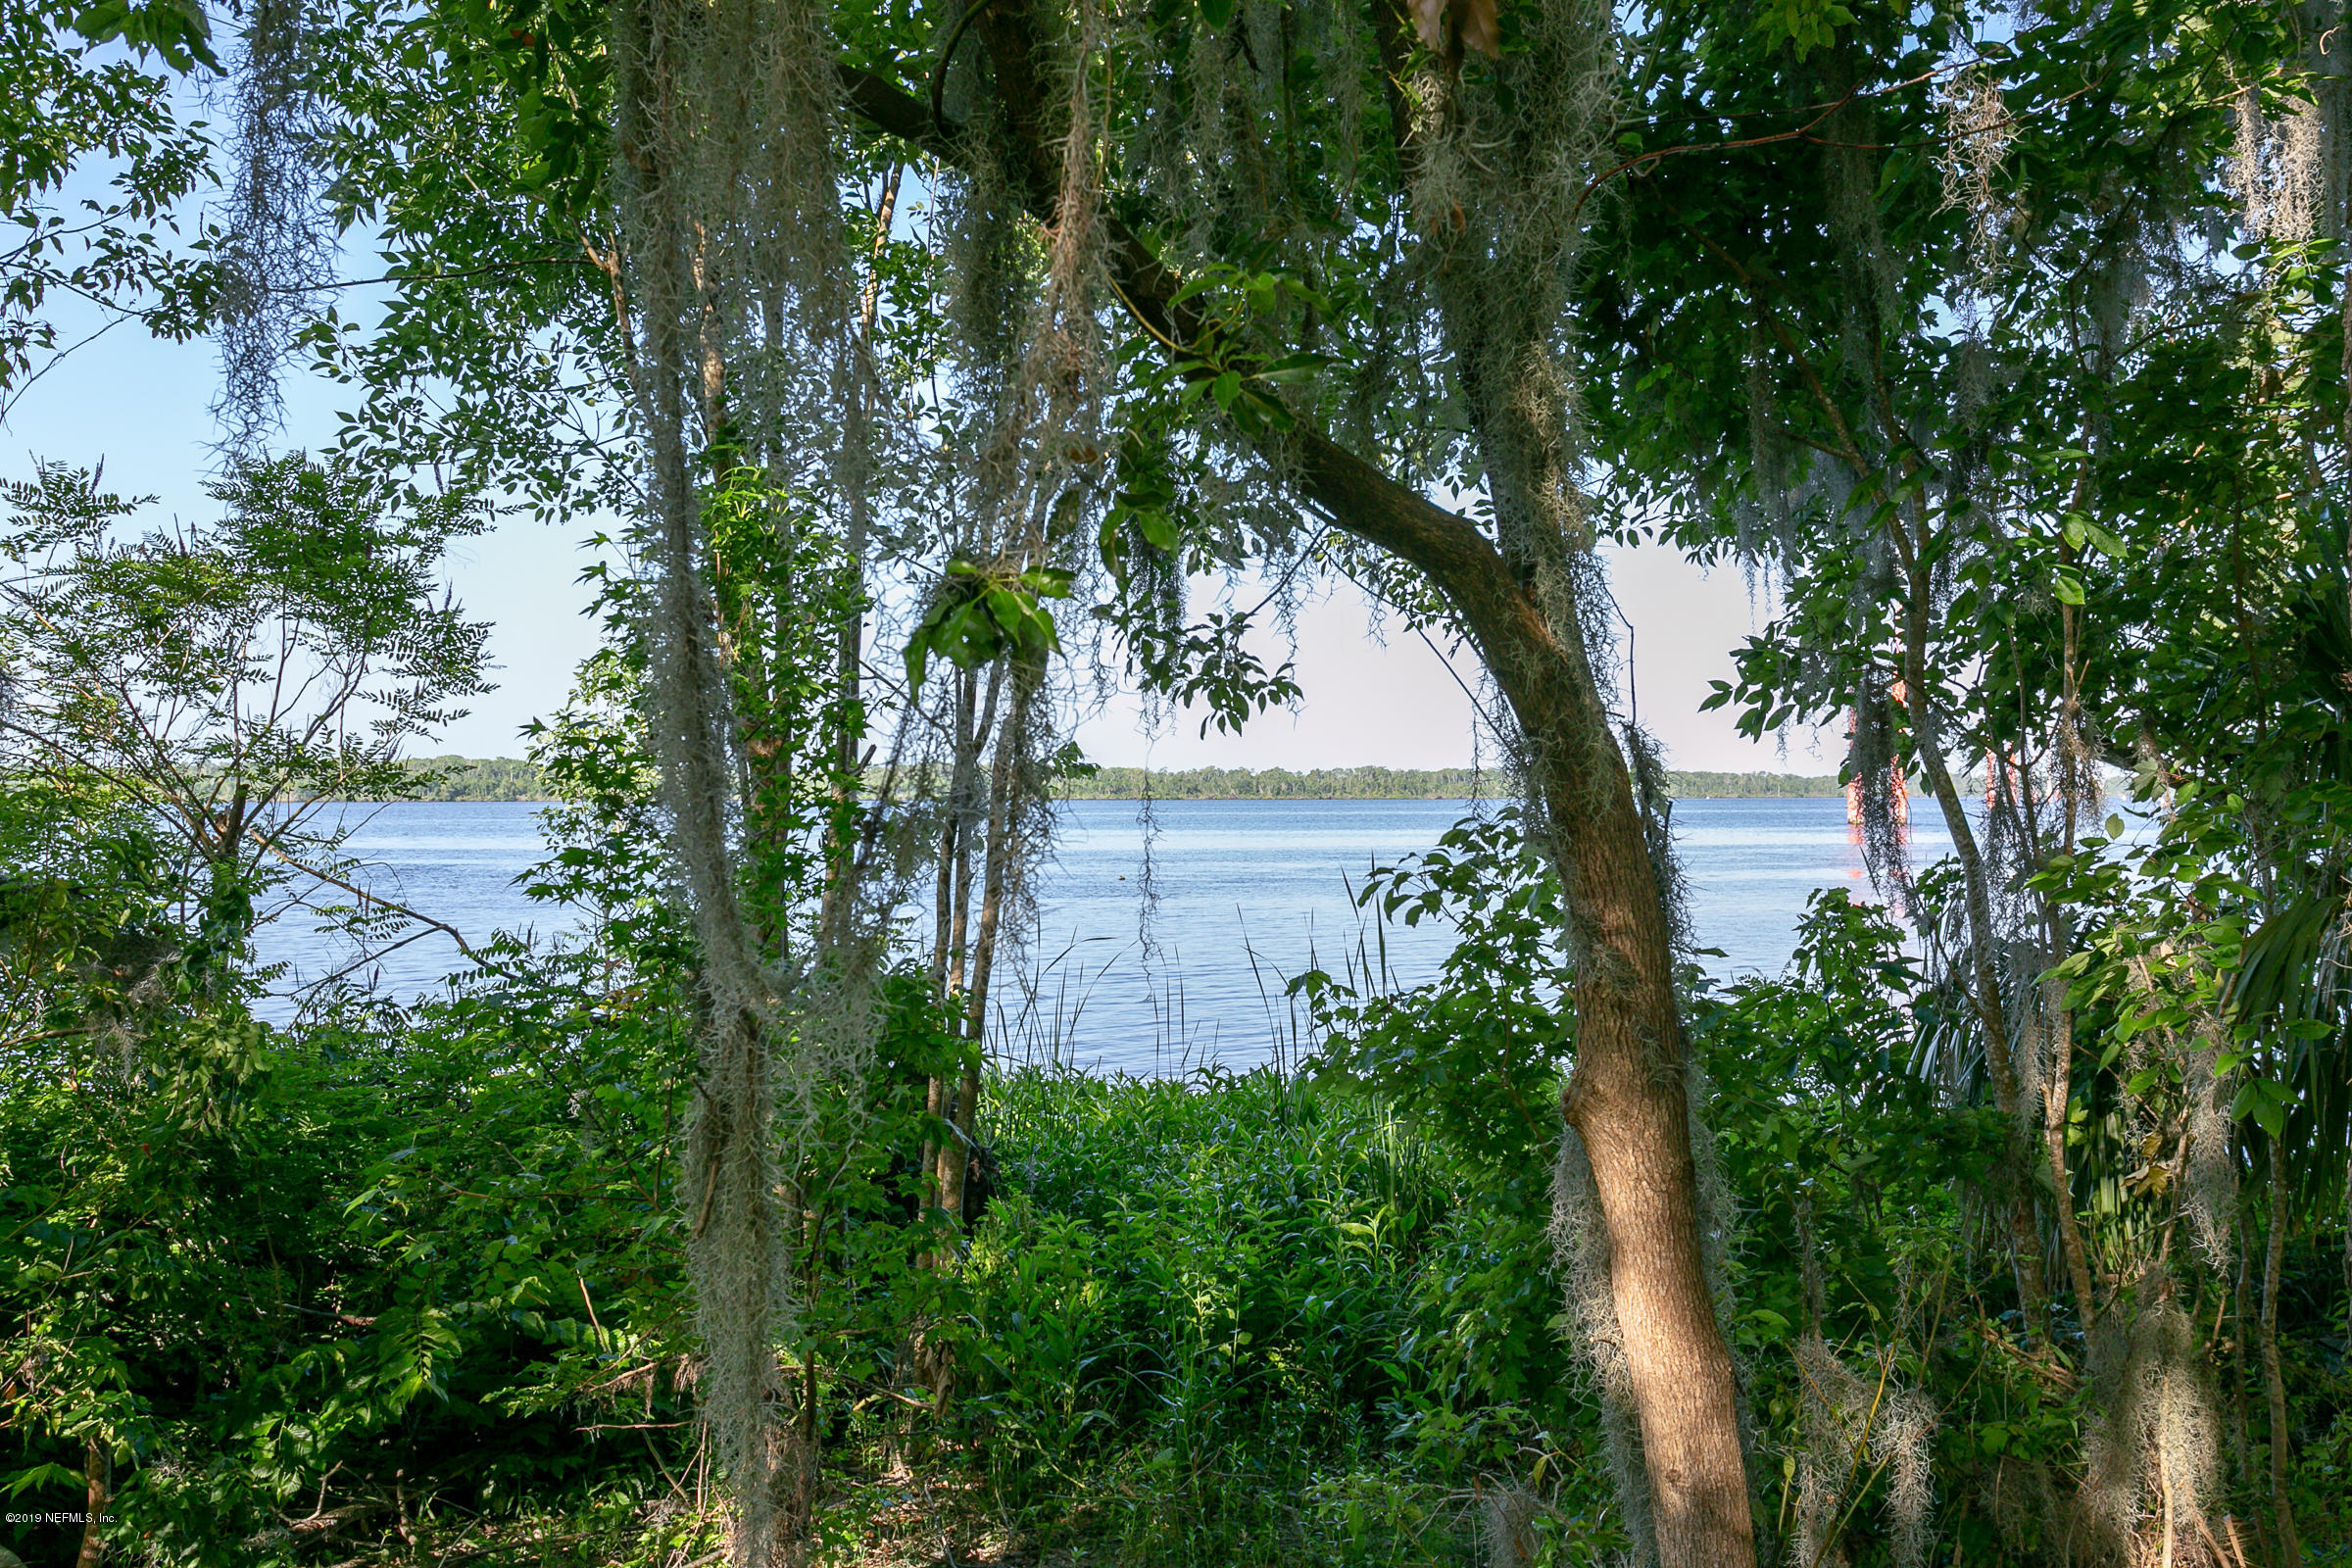 239 RIVER, EAST PALATKA, FLORIDA 32131, ,Vacant land,For sale,RIVER,1025236